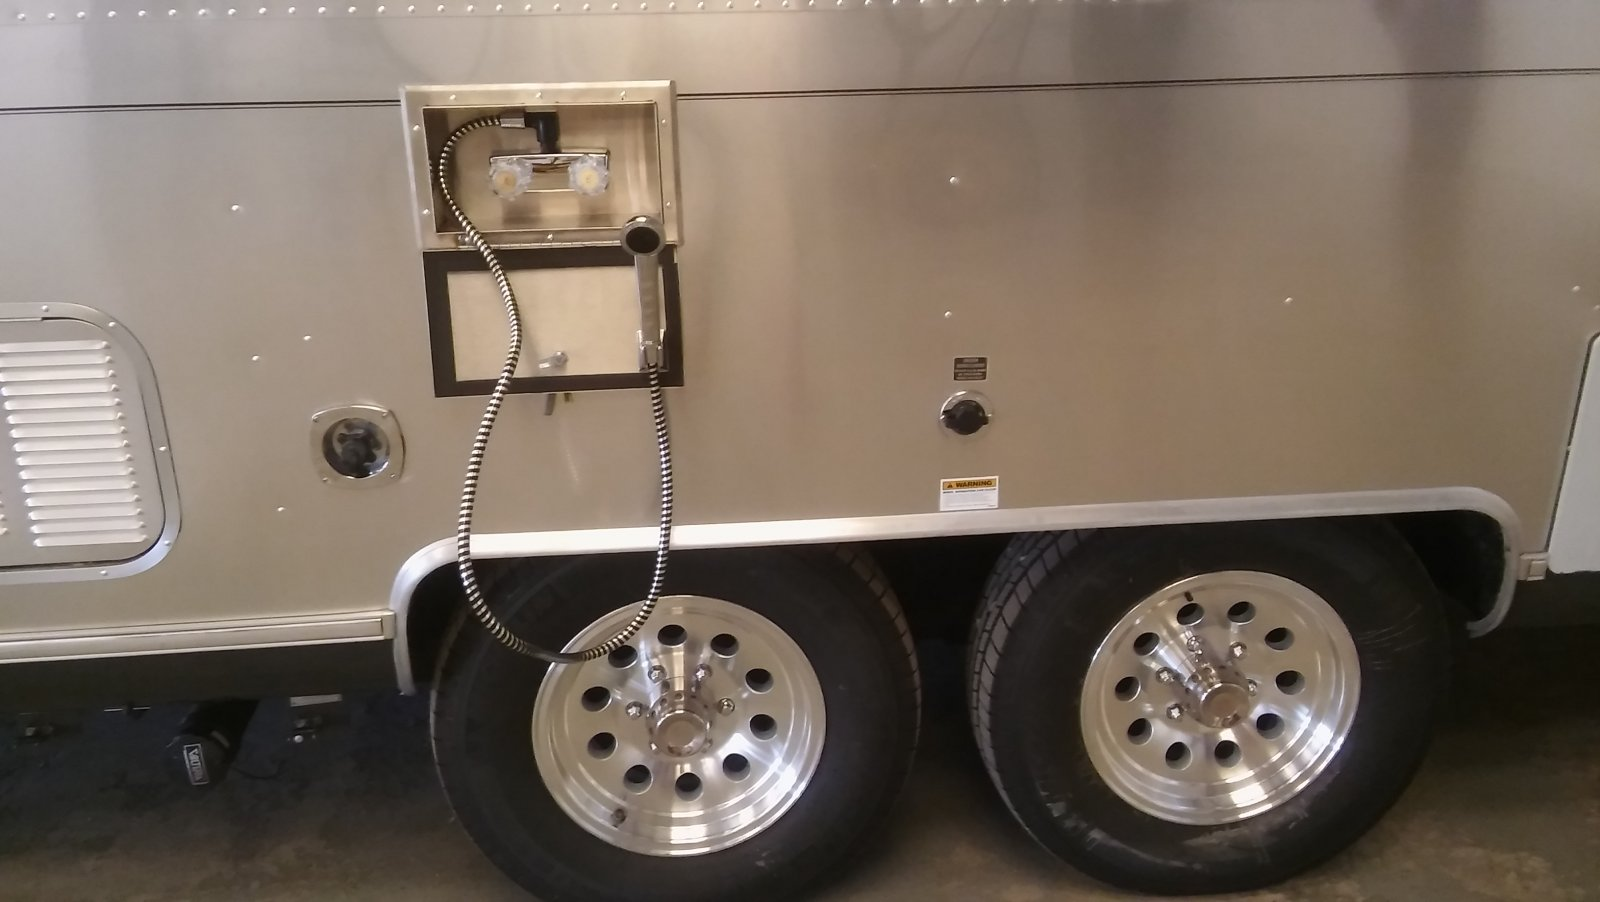 Click image for larger version  Name:Airstream outdoor shower new tires and wheels.jpg Views:132 Size:131.2 KB ID:264201